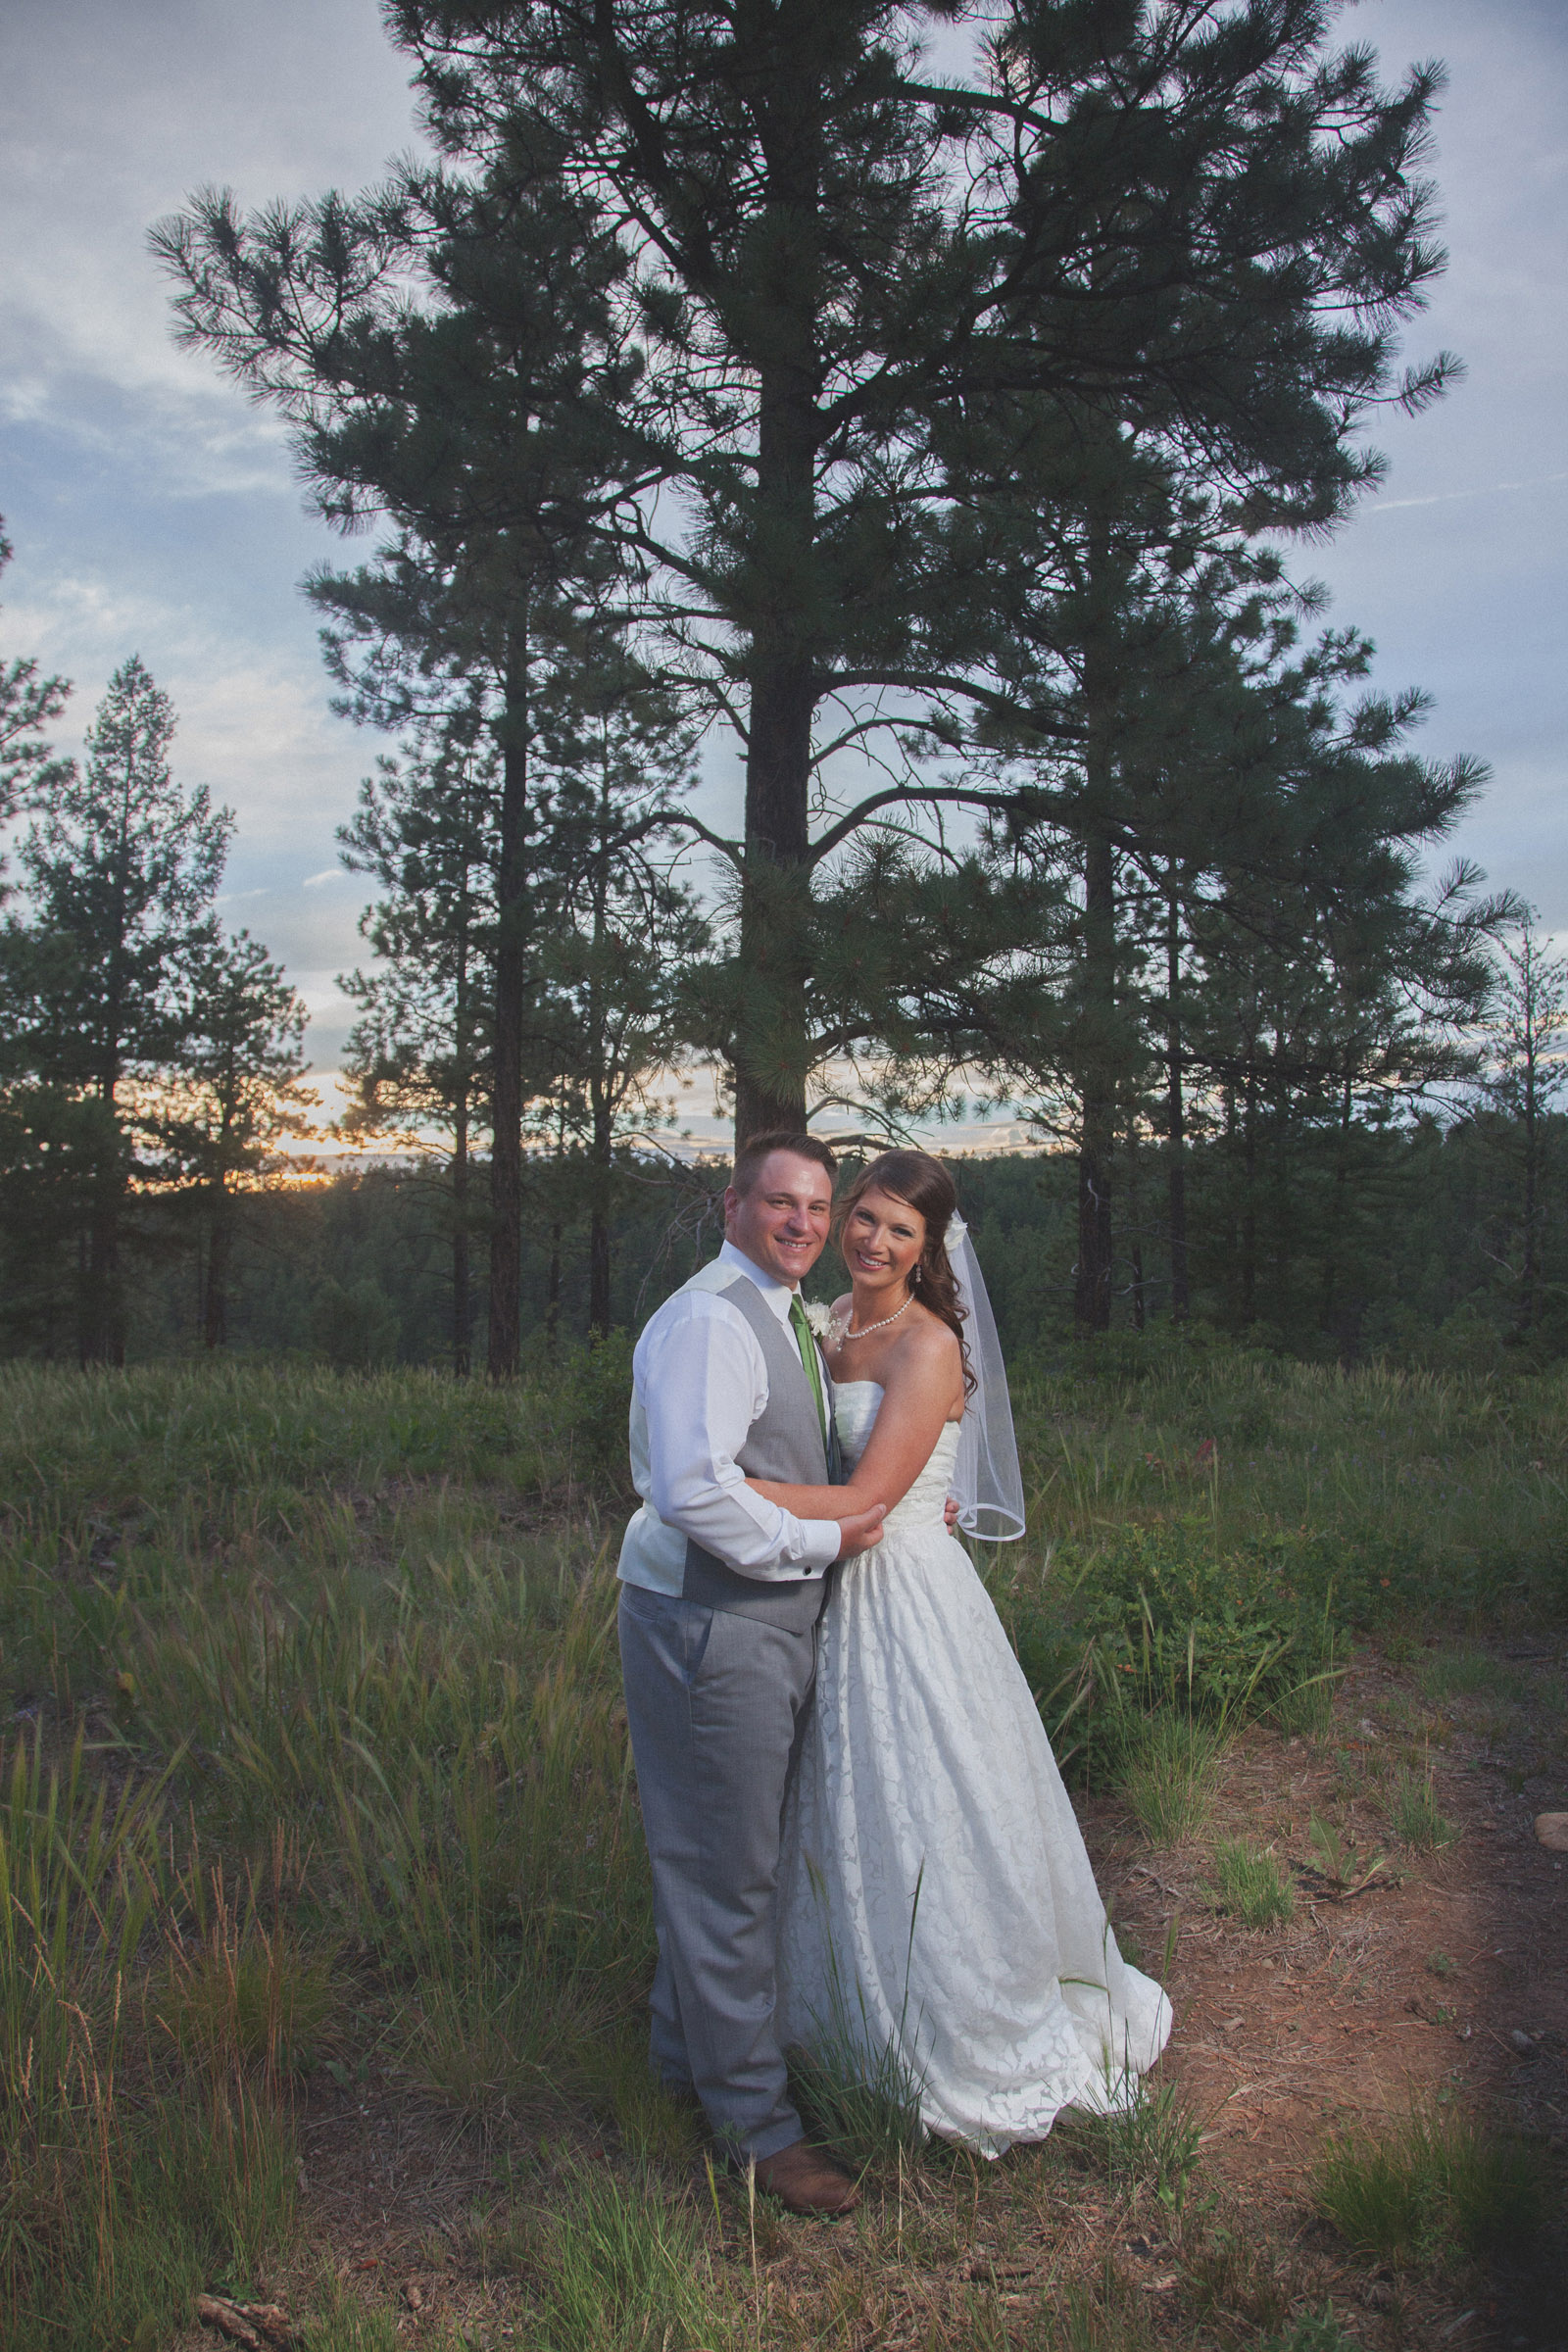 forest-bride-trees-sunset-wedding-photographers-in-farmington-nm-19